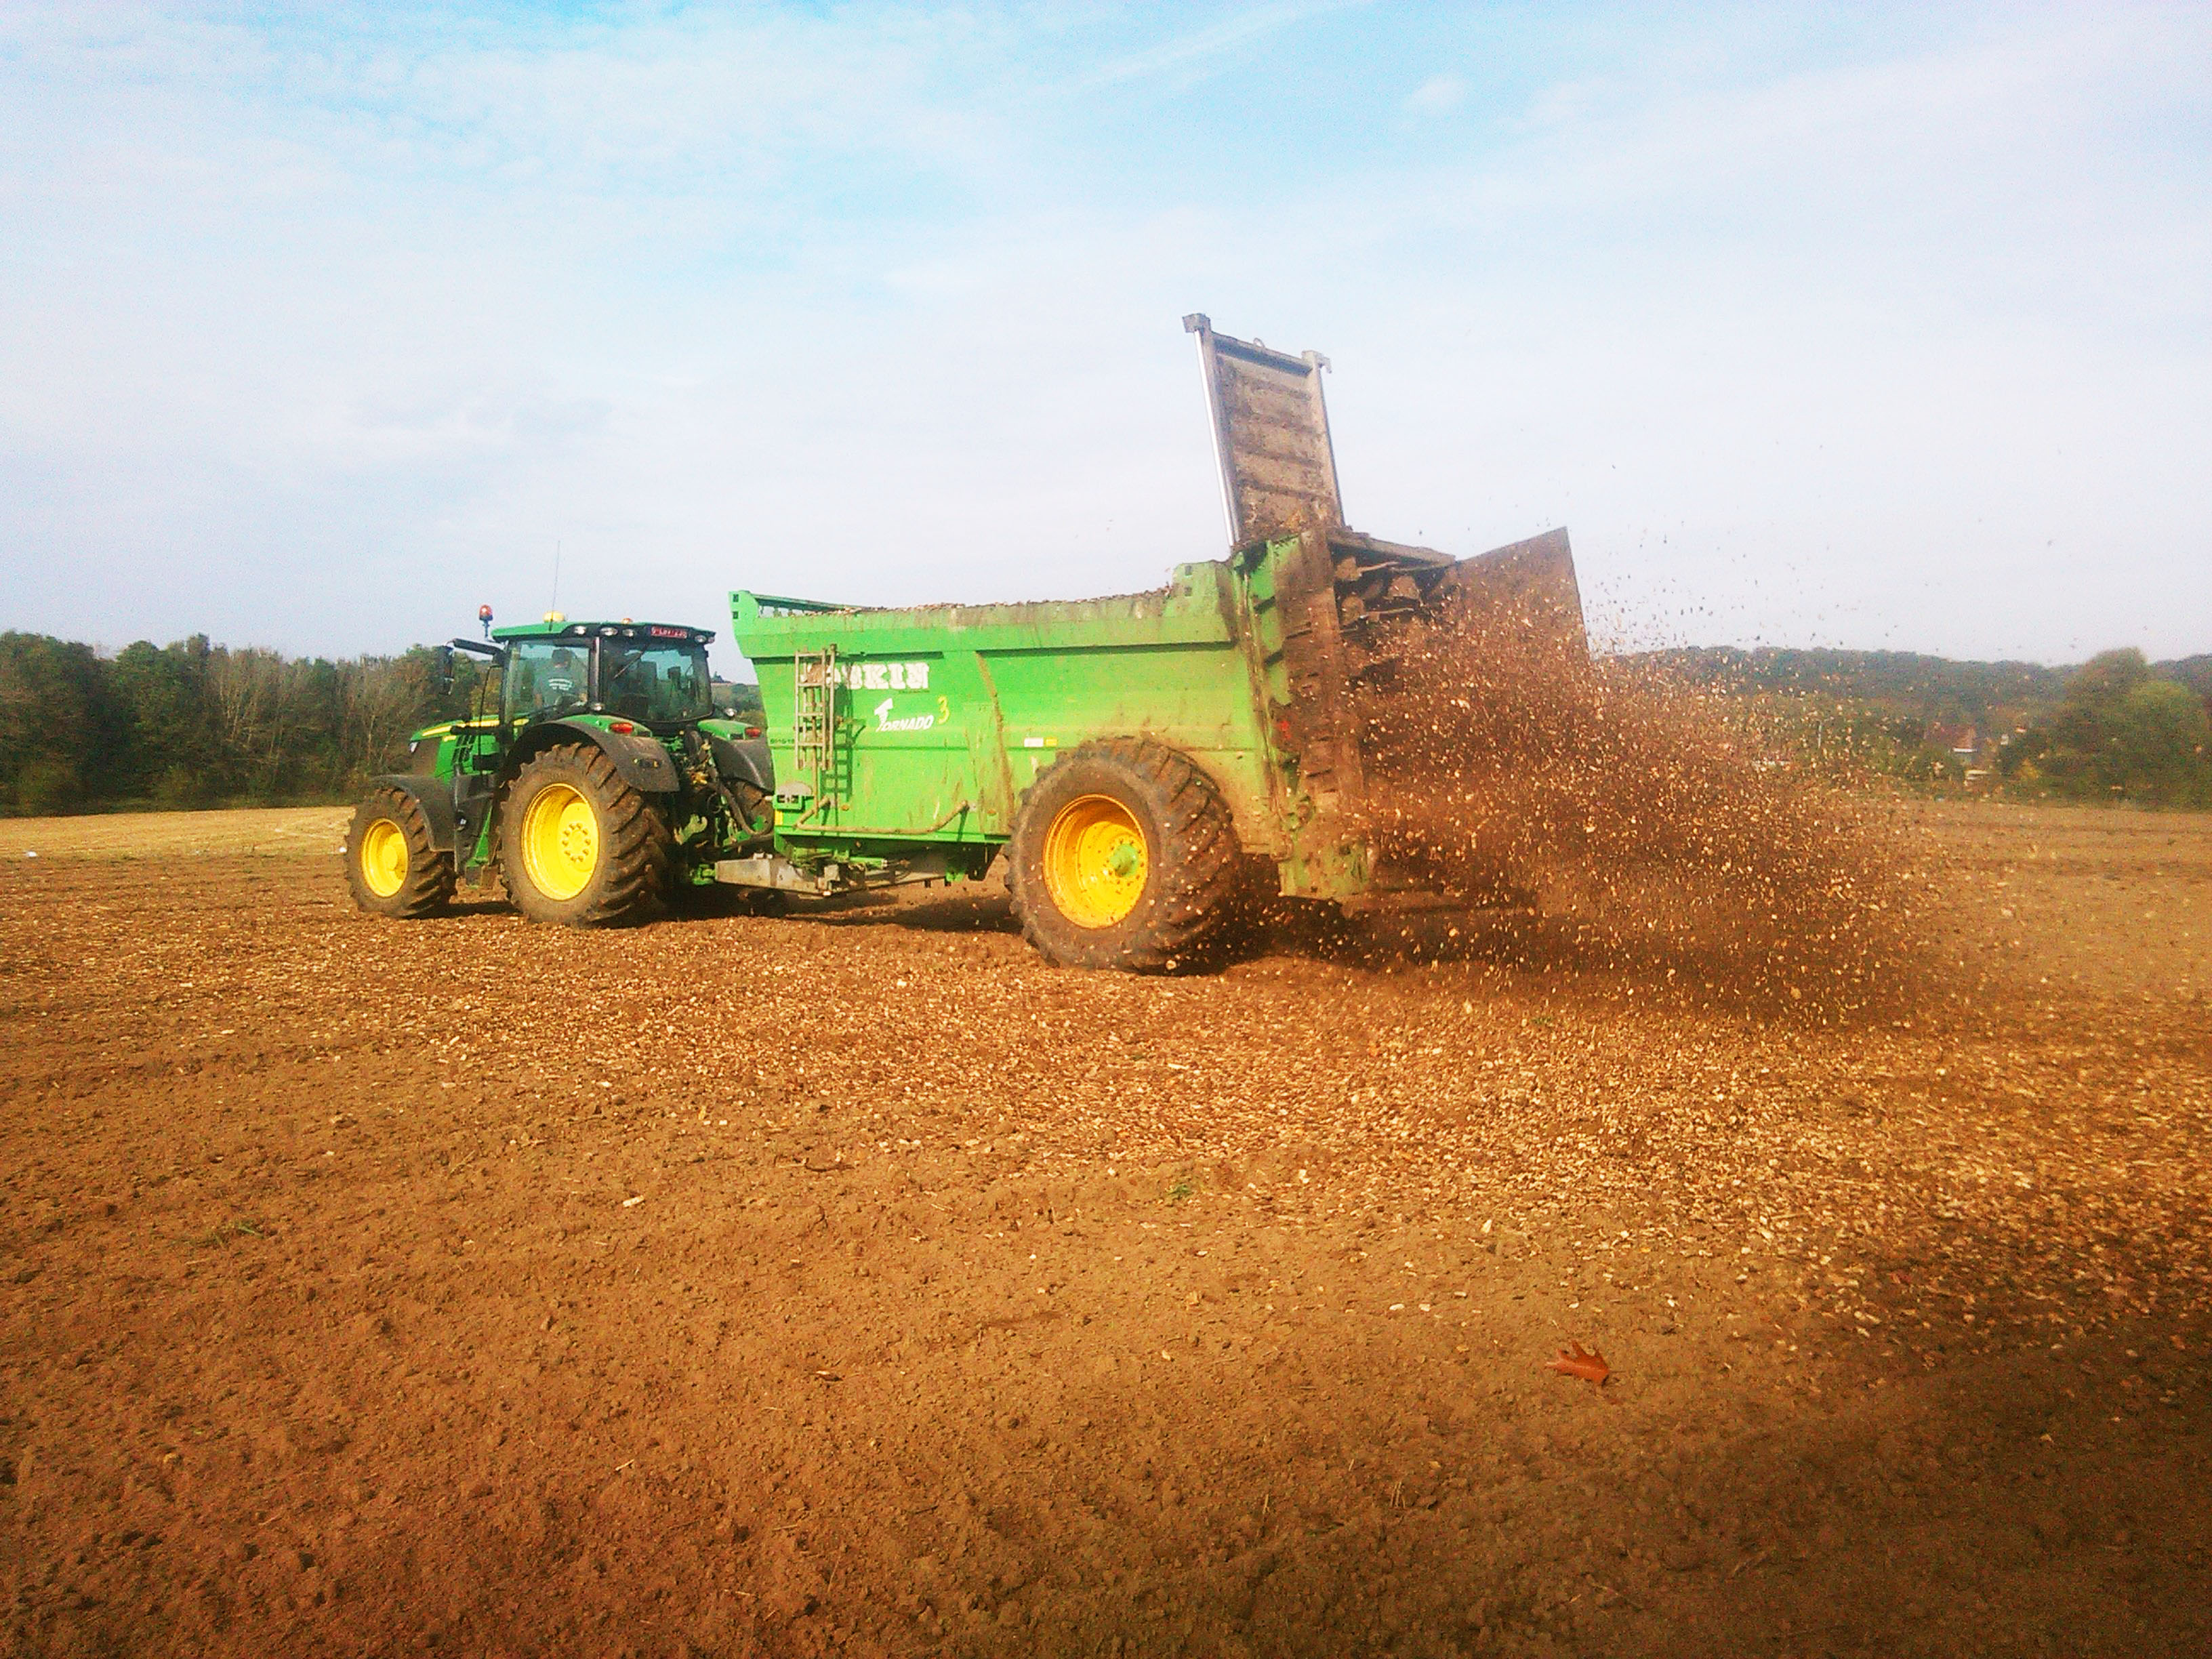 Woodchip being spread over the field by tractor. Photo credit: BDB